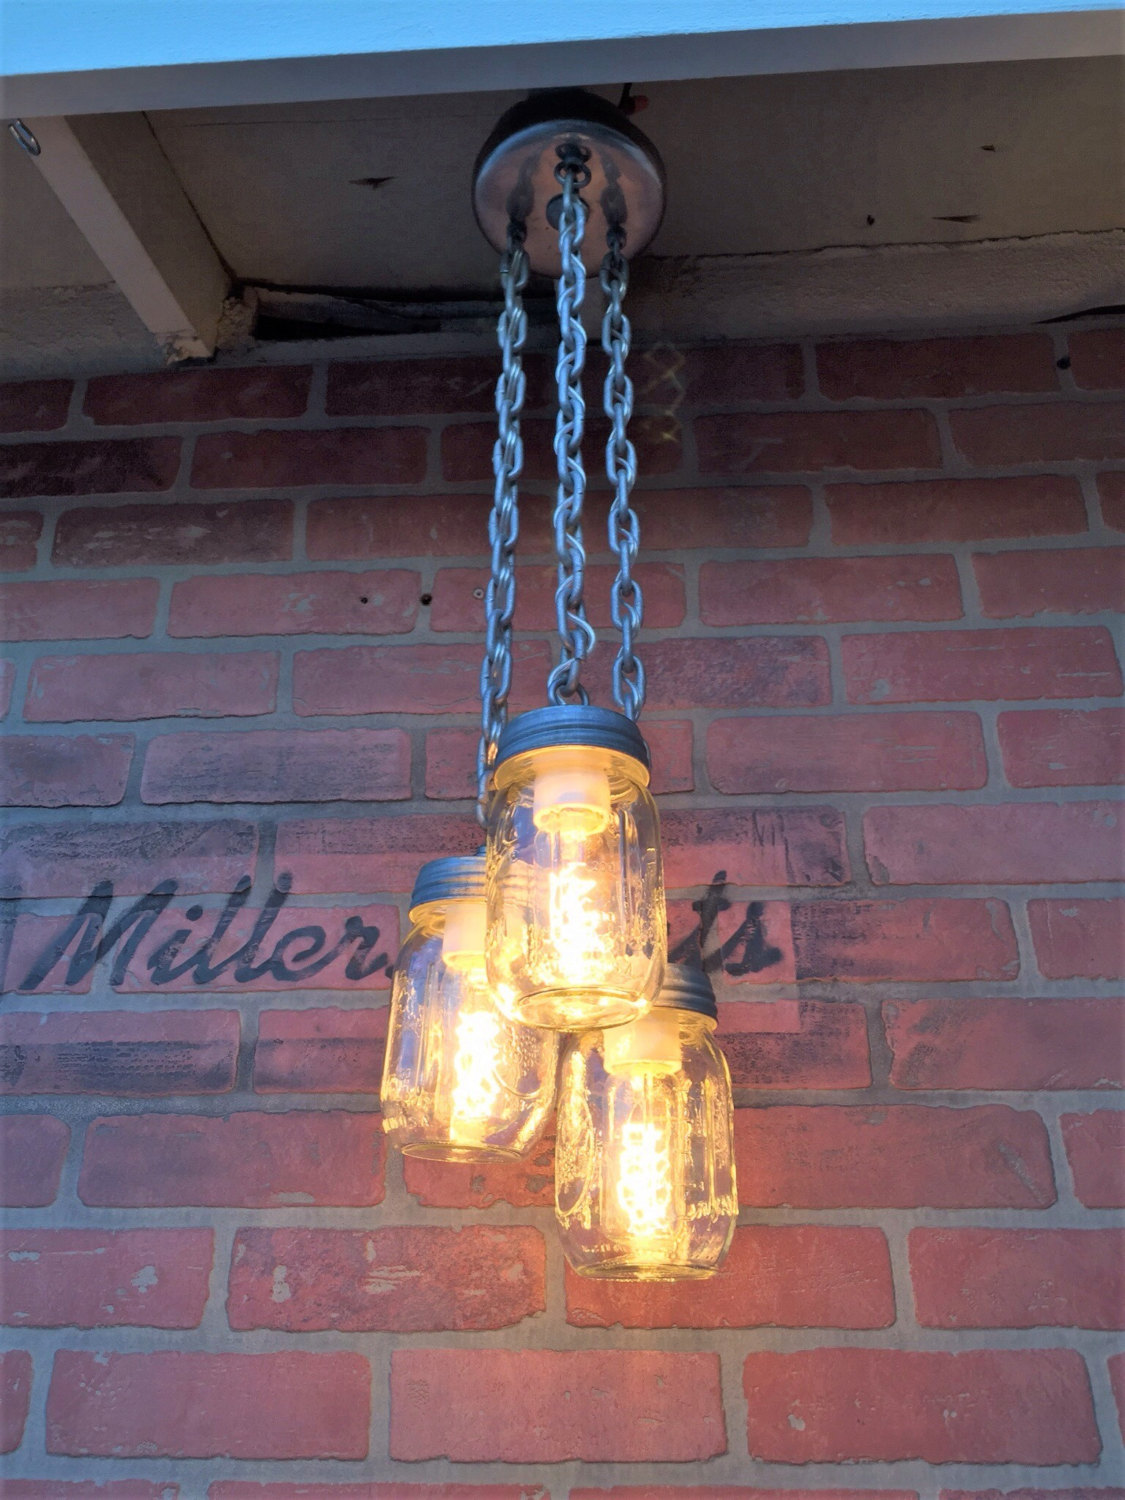 Unconventional handmade industrial lighting designs you can diy 20 unconventional handmade industrial lighting designs you can diy arubaitofo Image collections